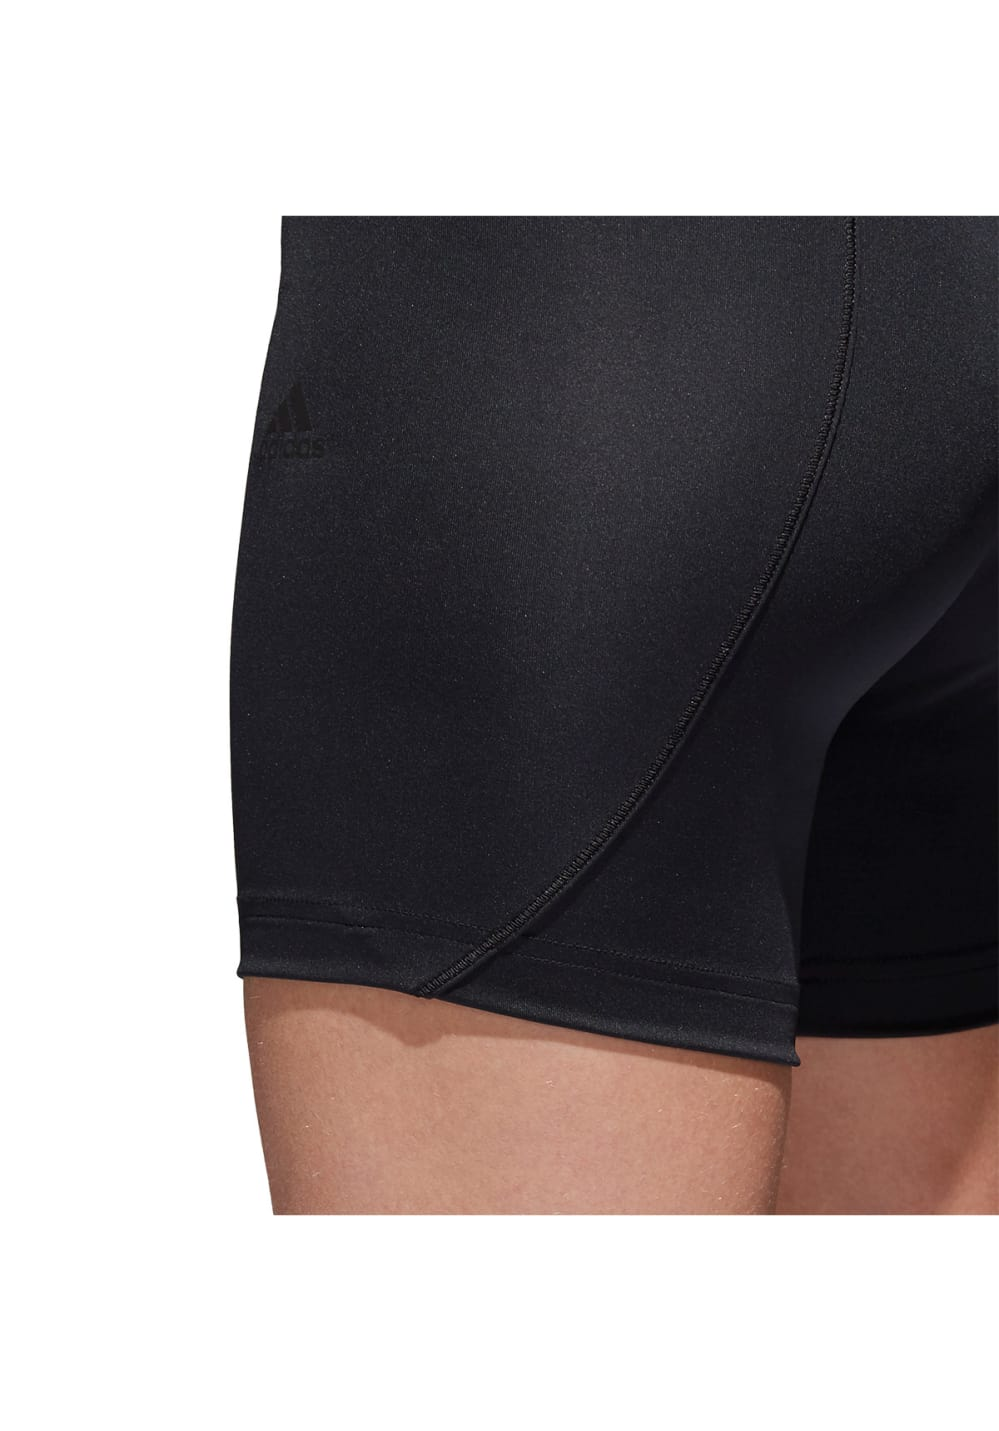 finest selection 93d2d 837ef Next. -50%. This product is currently out of stock. adidas. Alphaskin Sport  Tights 5 Inch - Fitness trousers for Women